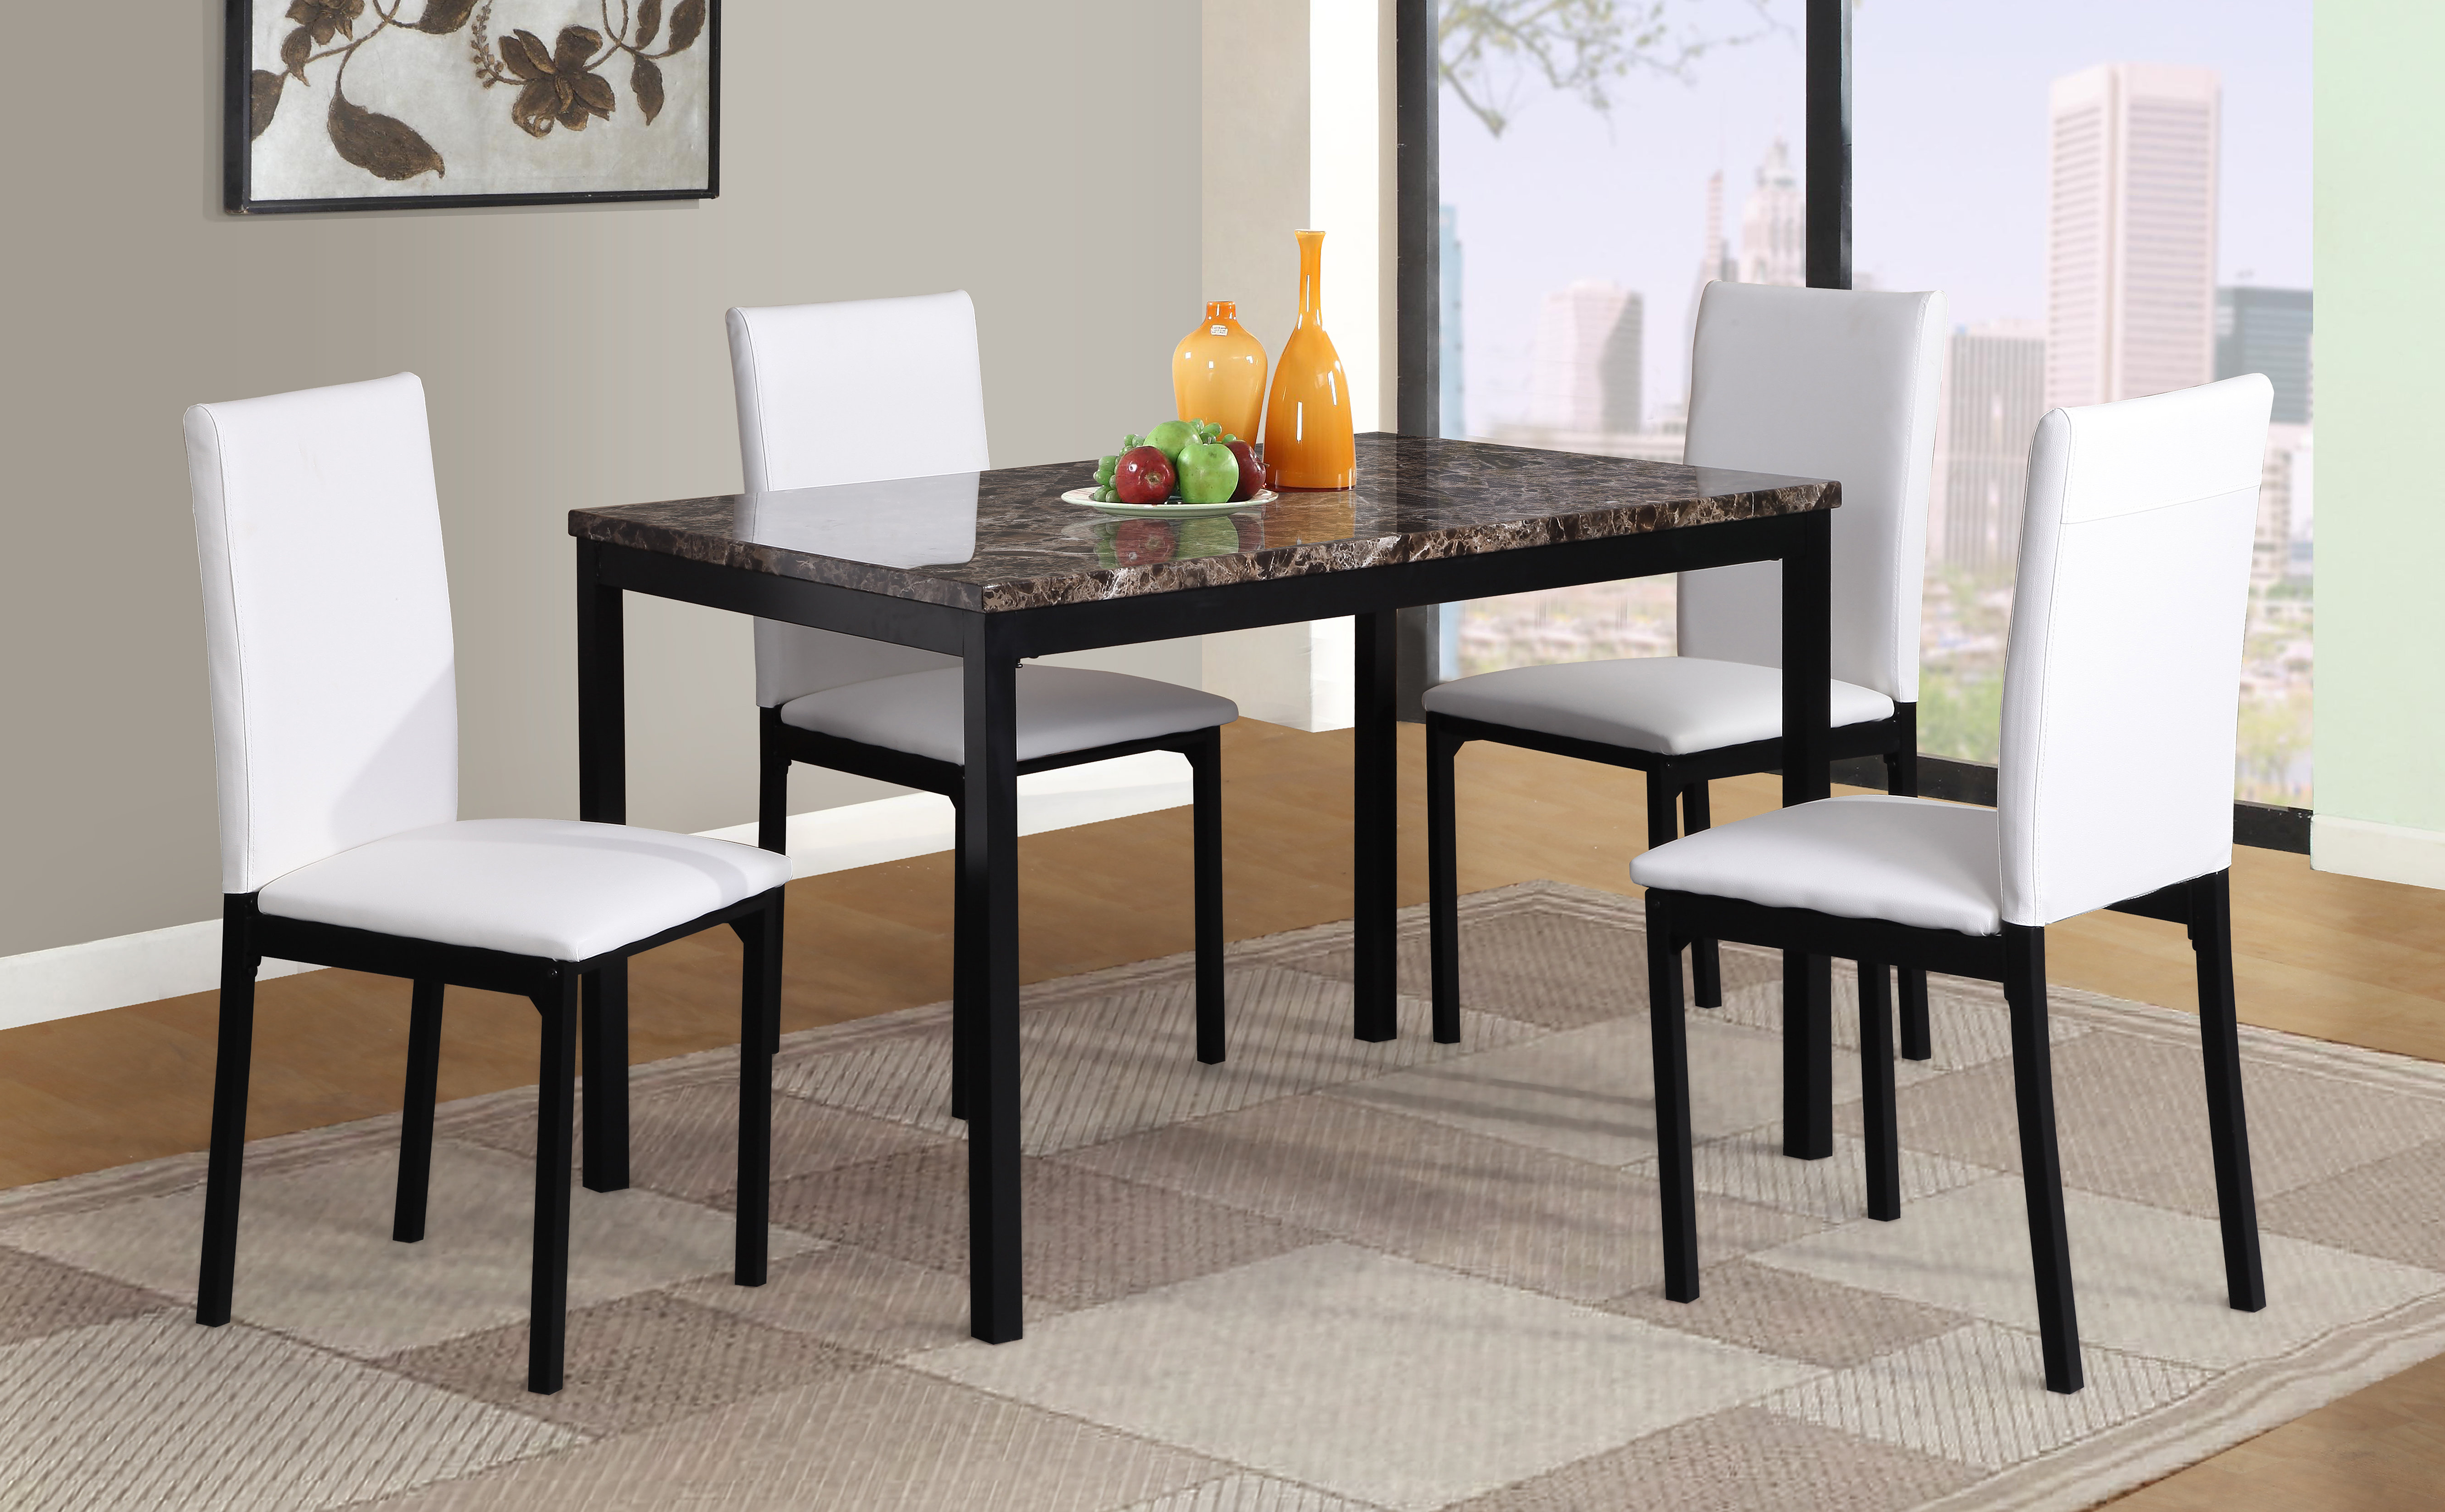 Red Barrel Studio Noyes 5 Piece Dining Set In Widely Used Noyes 5 Piece Dining Sets (Gallery 3 of 20)